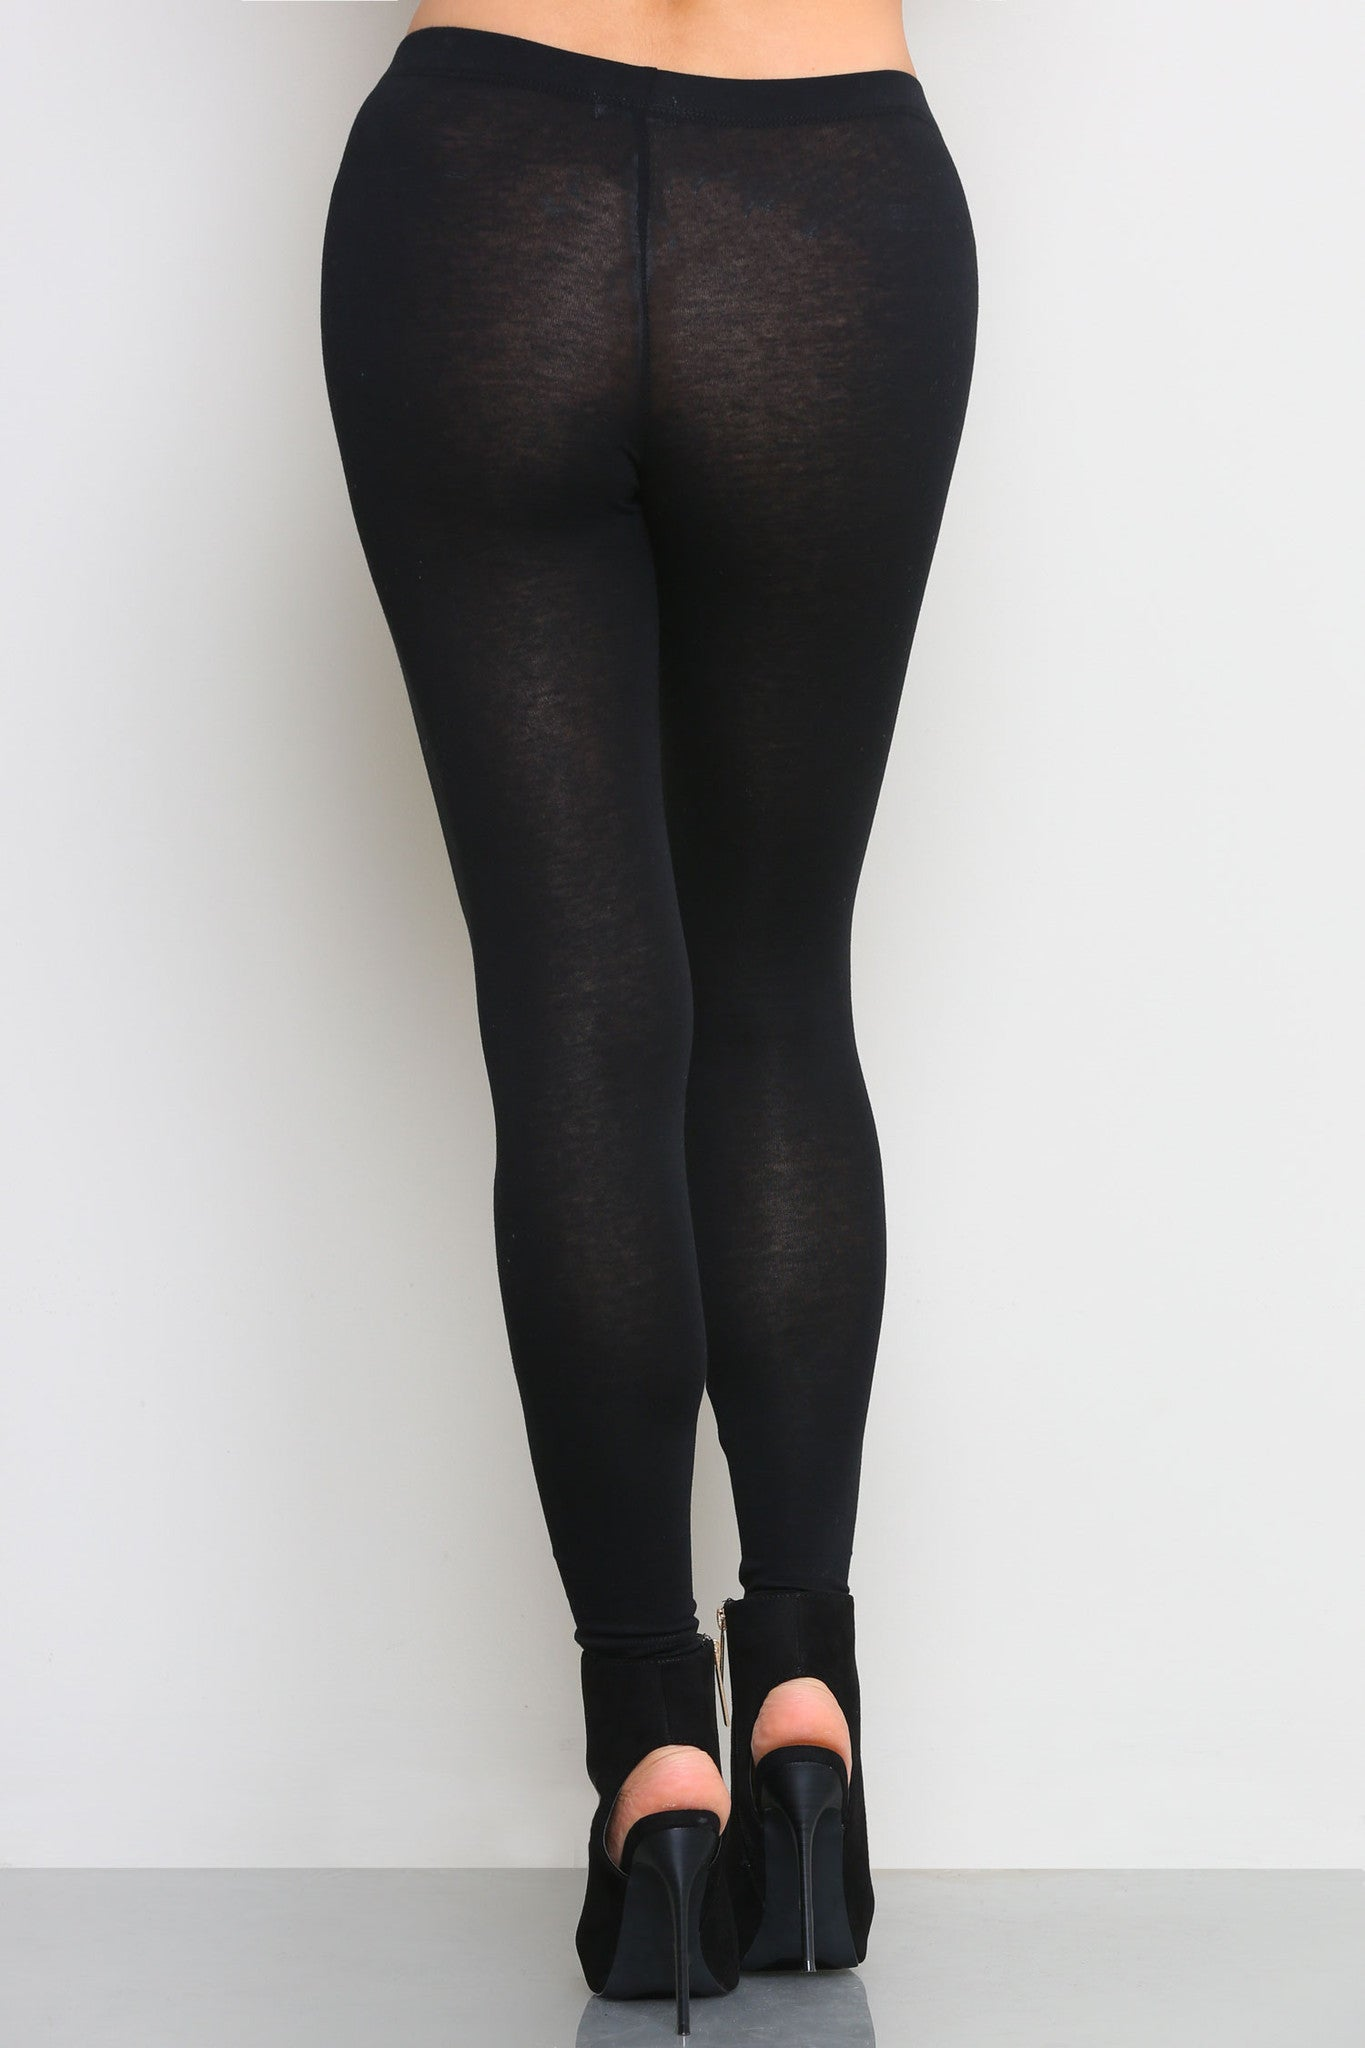 MARIA LEGGINGS - Glam Envy - 3